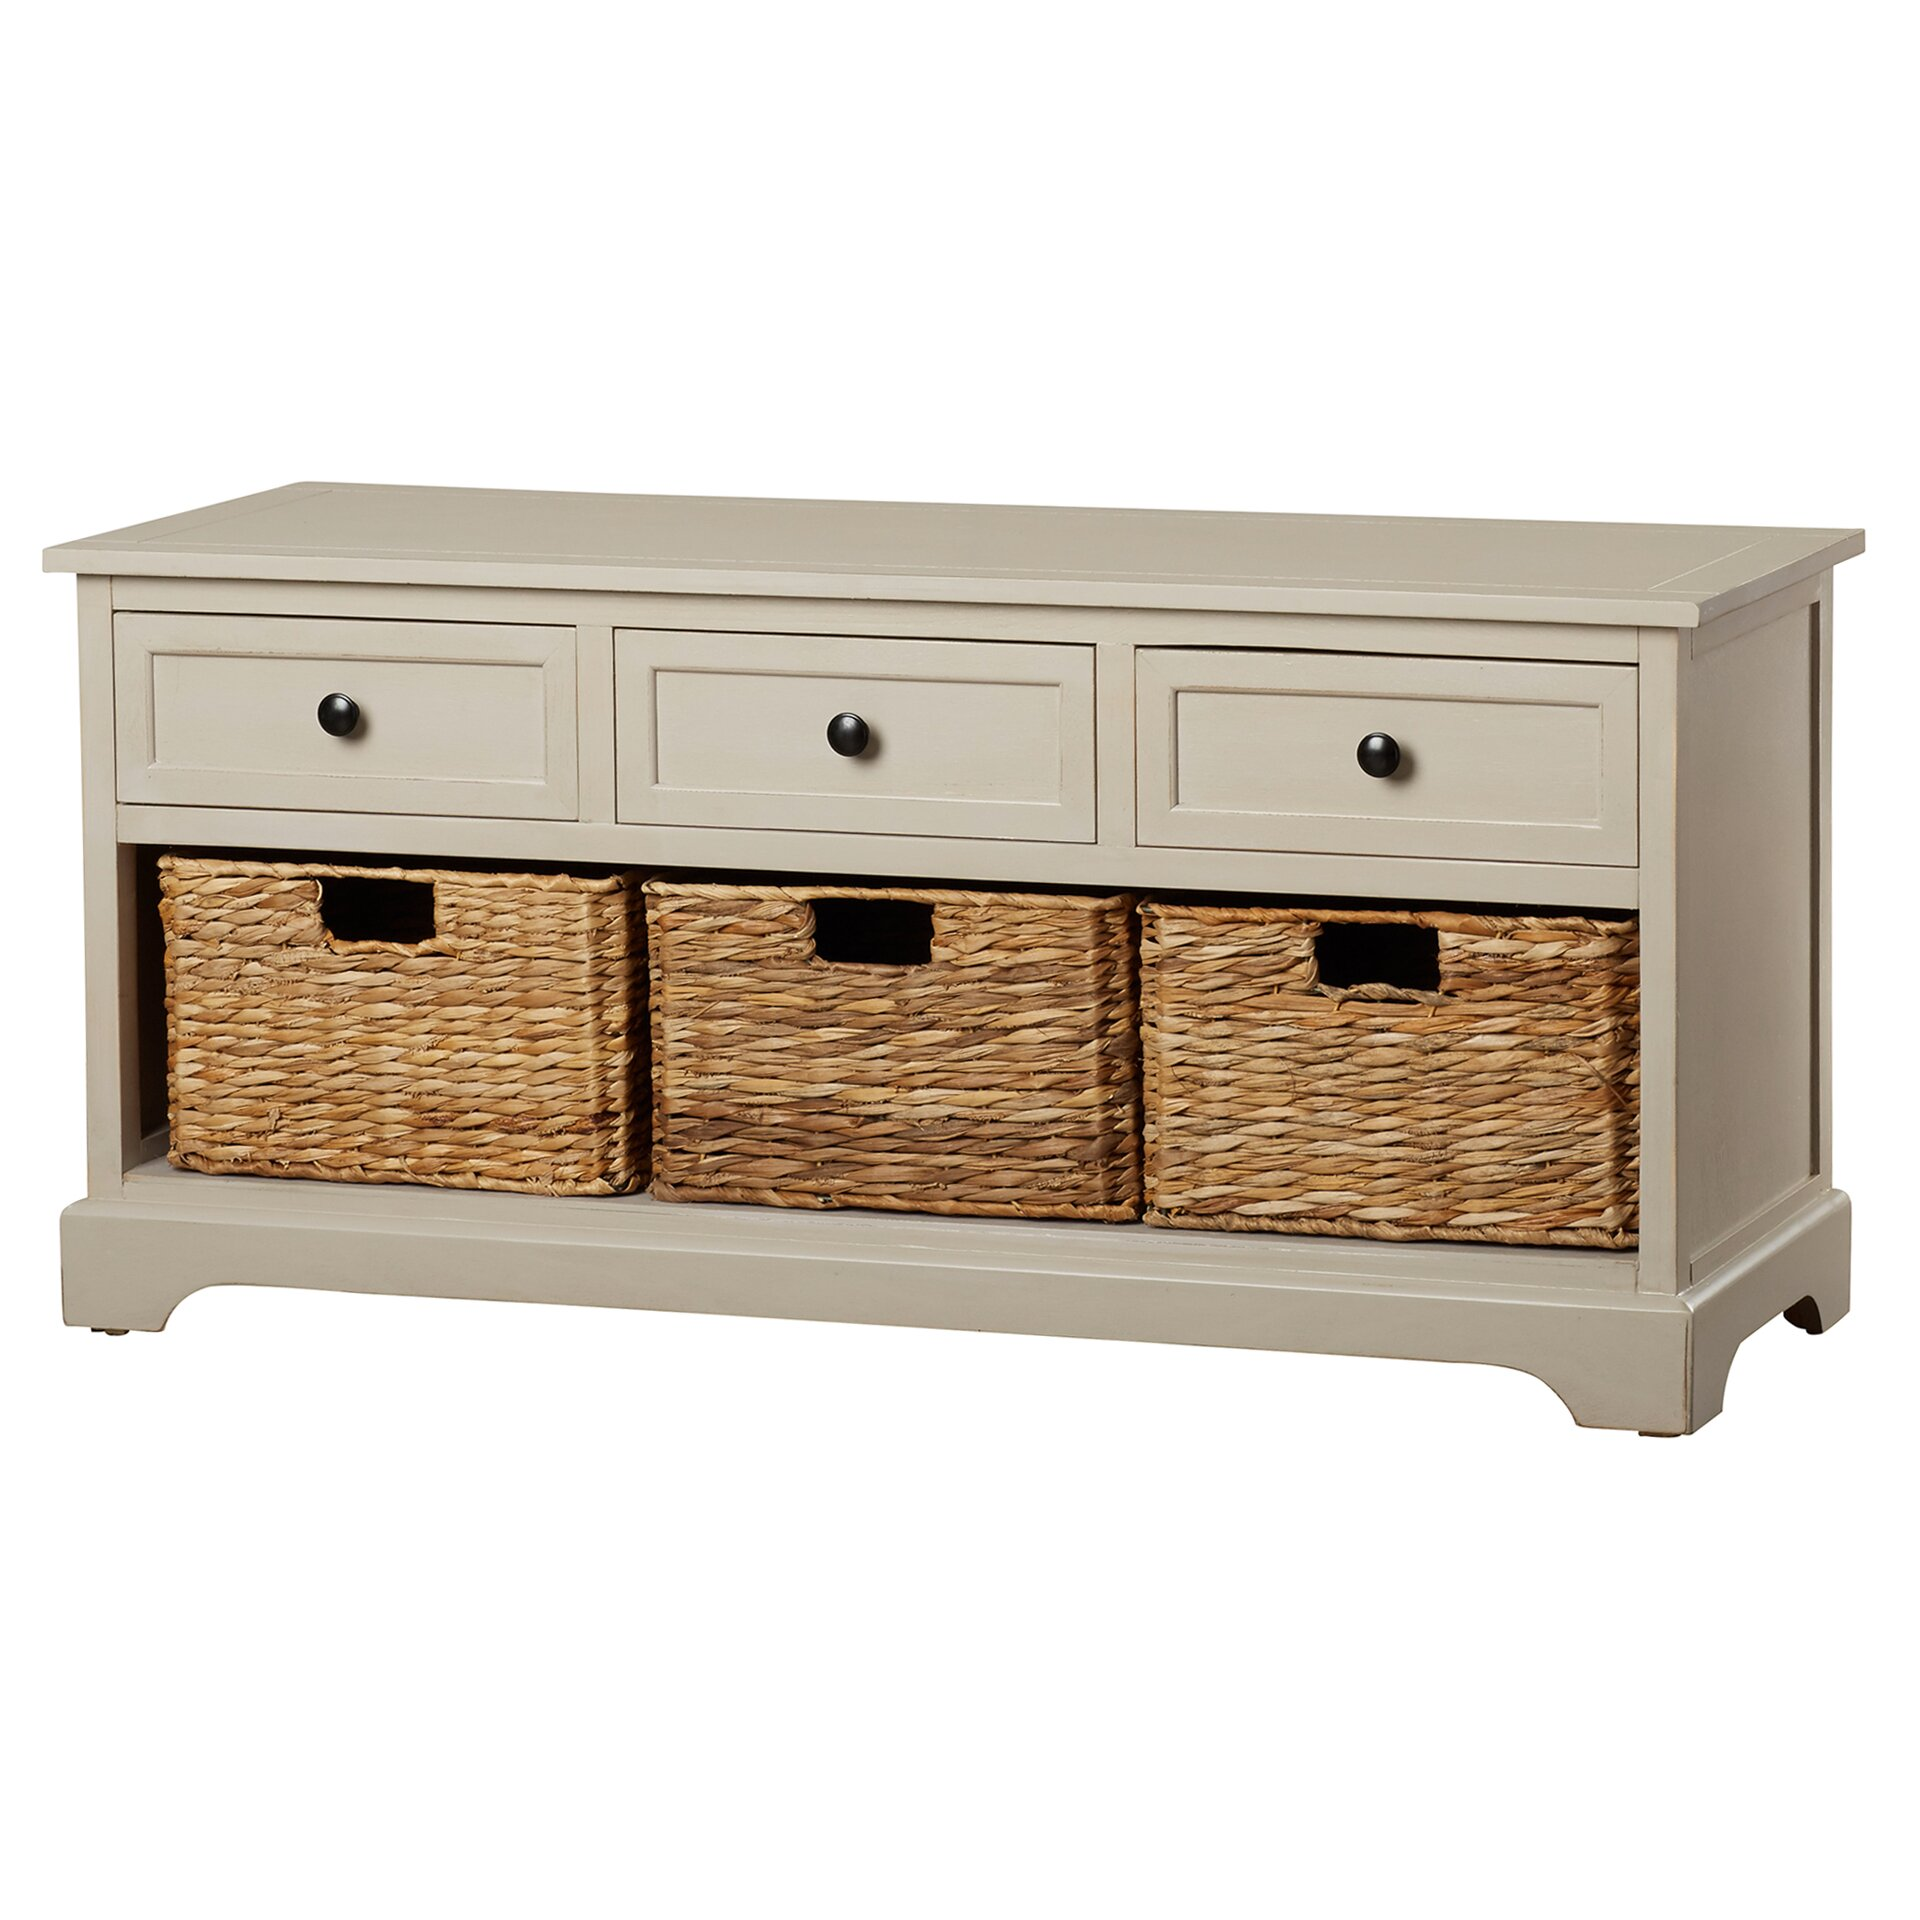 Beachcrest home mckinley 3 drawer storage entryway bench reviews wayfair Storage benches